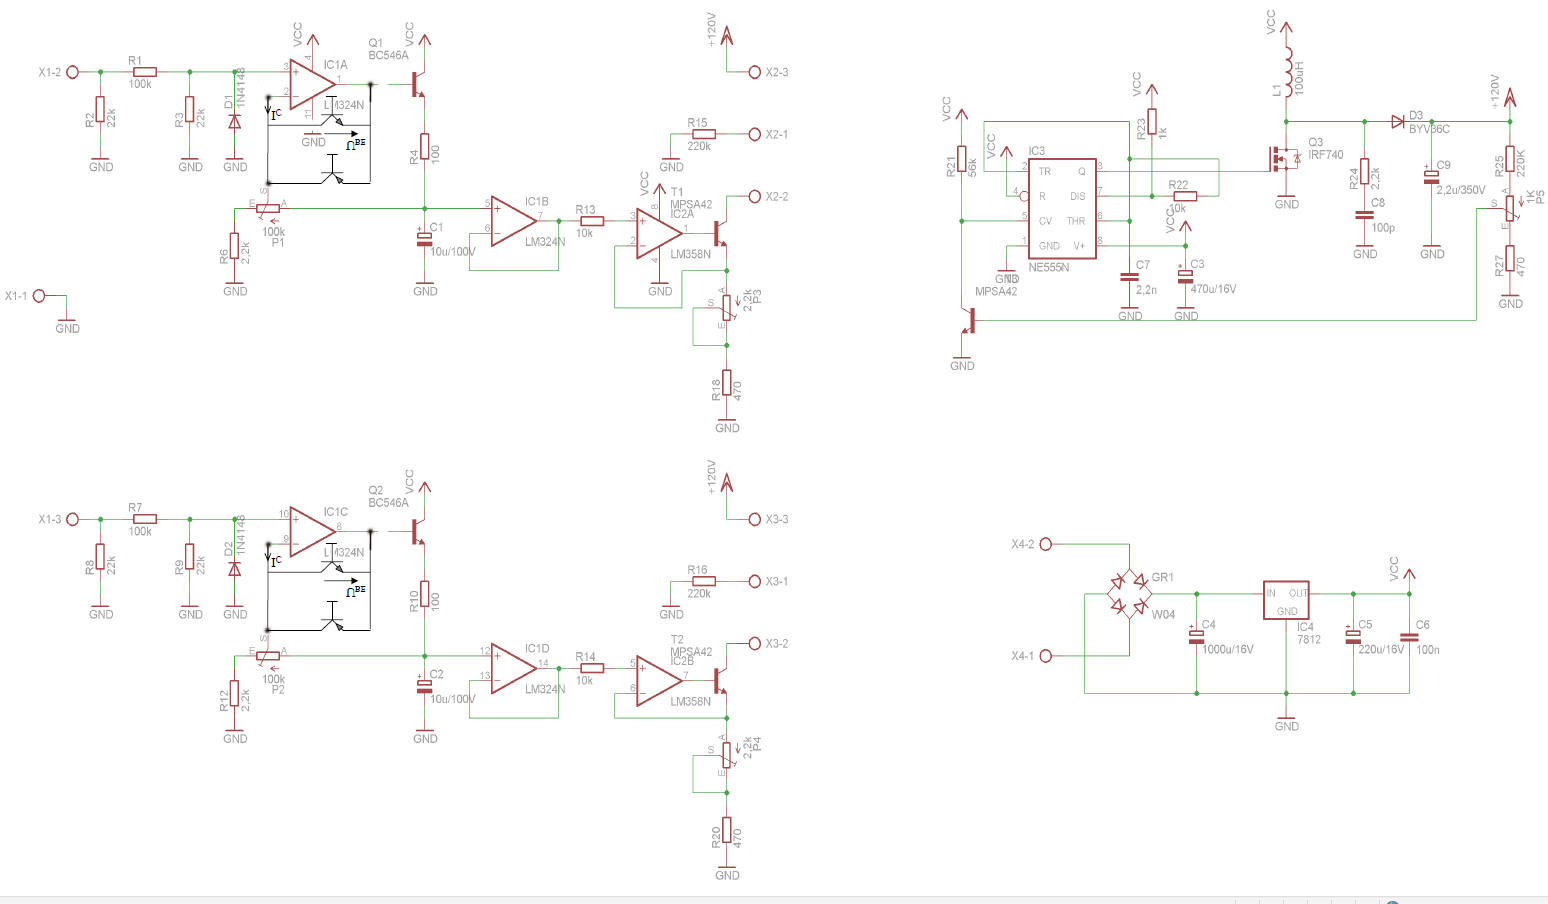 Vu Meter Schaltung Lm3915 Circuit Filter I Preview Image For In 13 Peakmeter